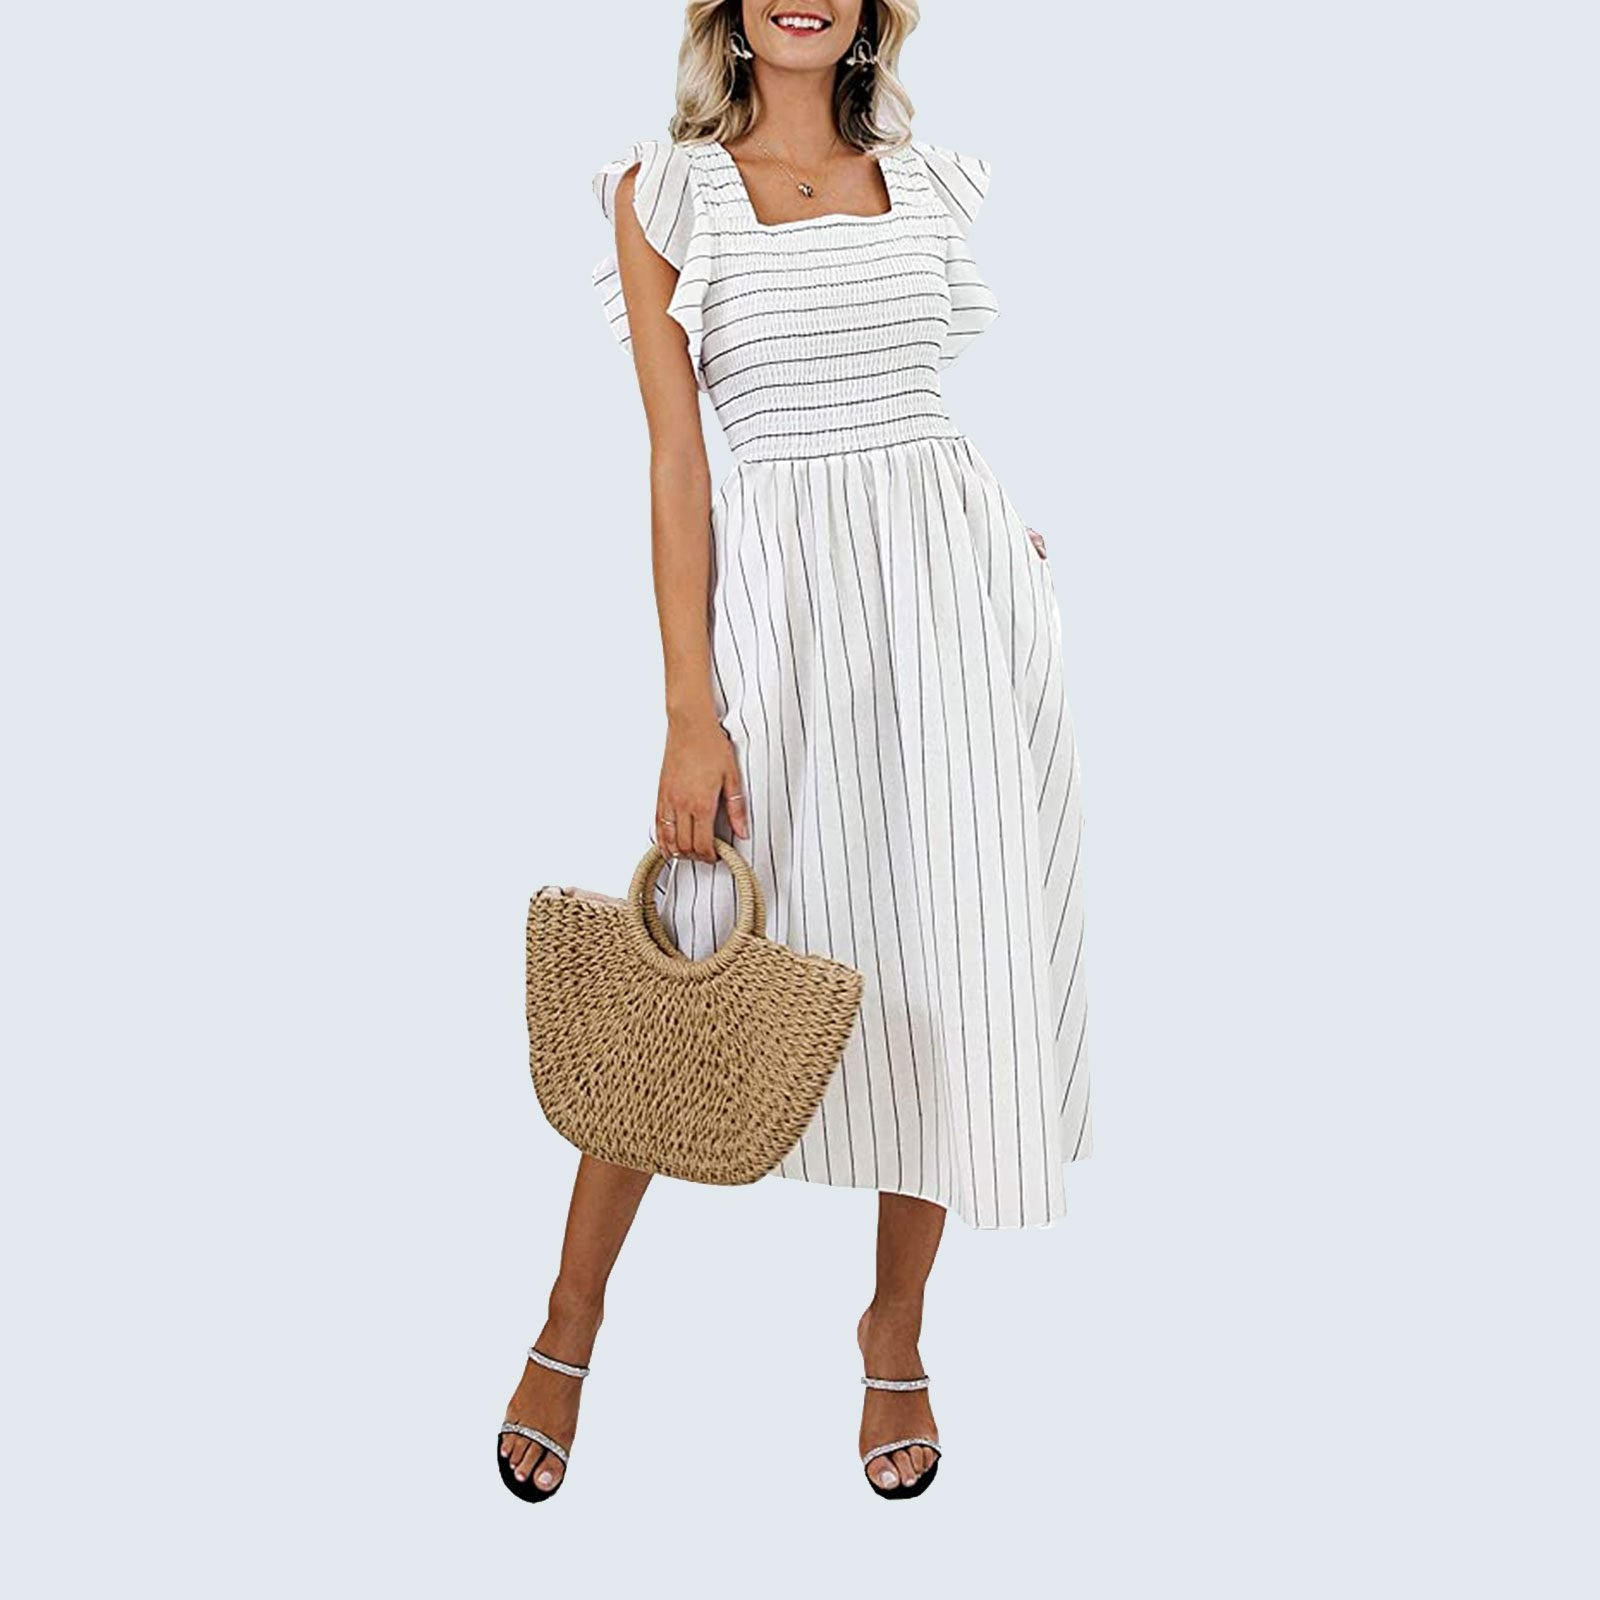 For the millennial mom: Miessial Striped Linen Dress